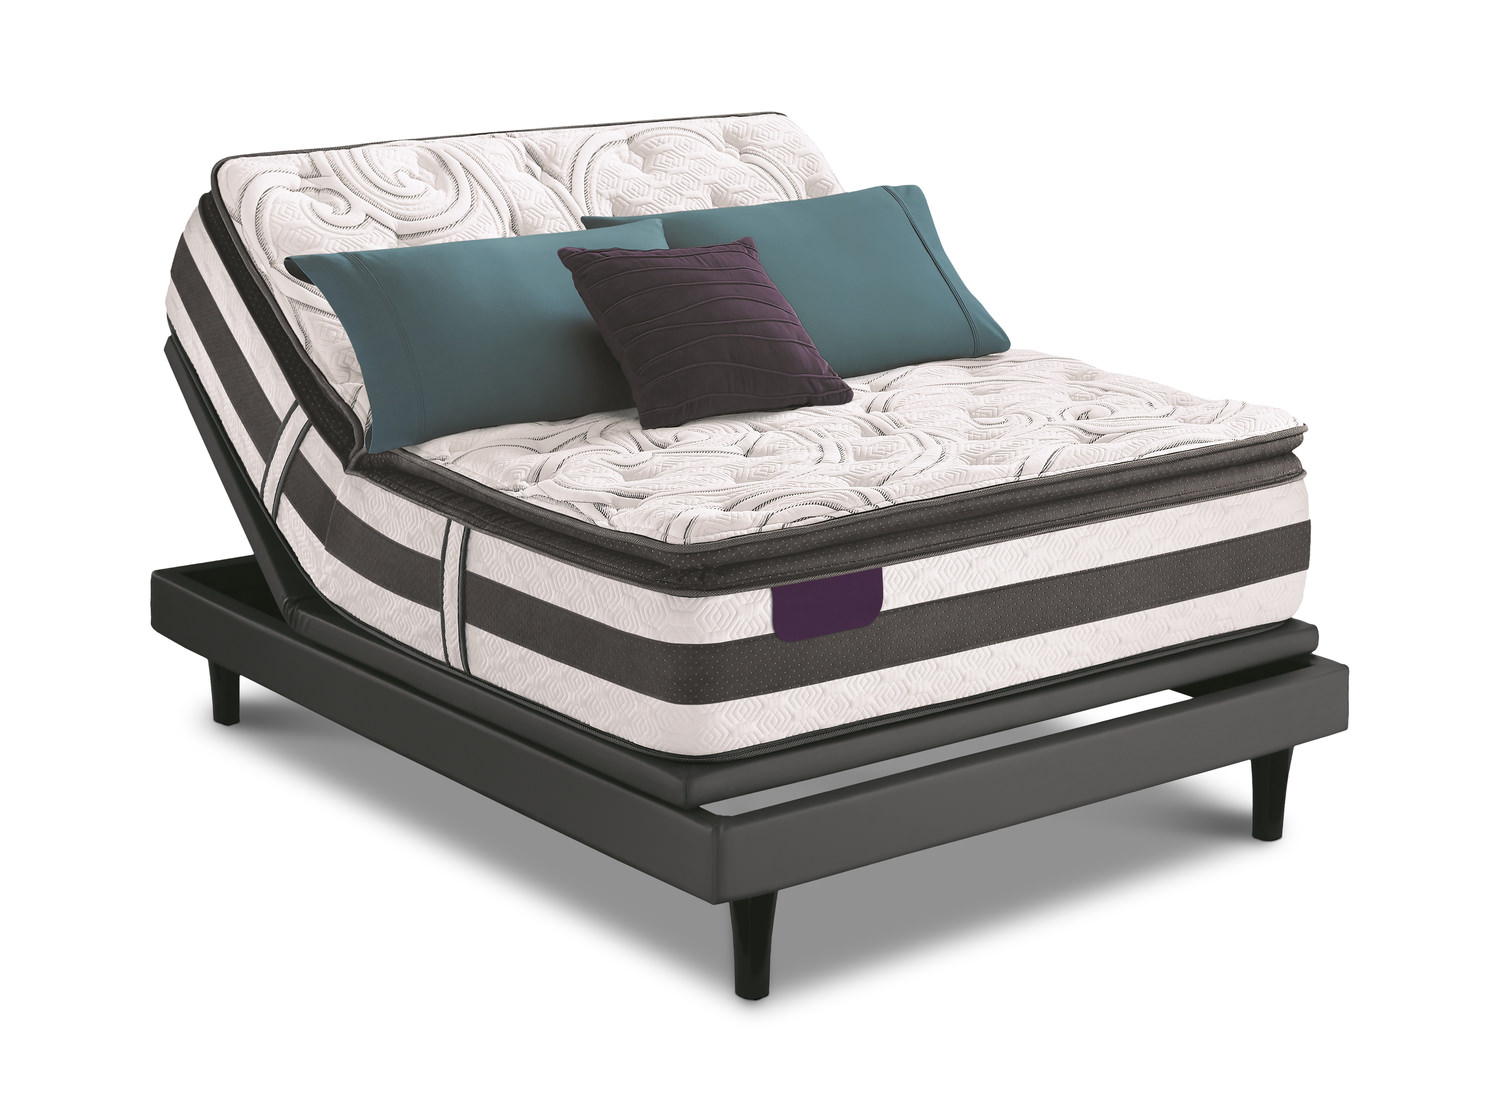 Observer Spt Queen Mattress Set With Mp3 Adjustable Base By Serta Dock86